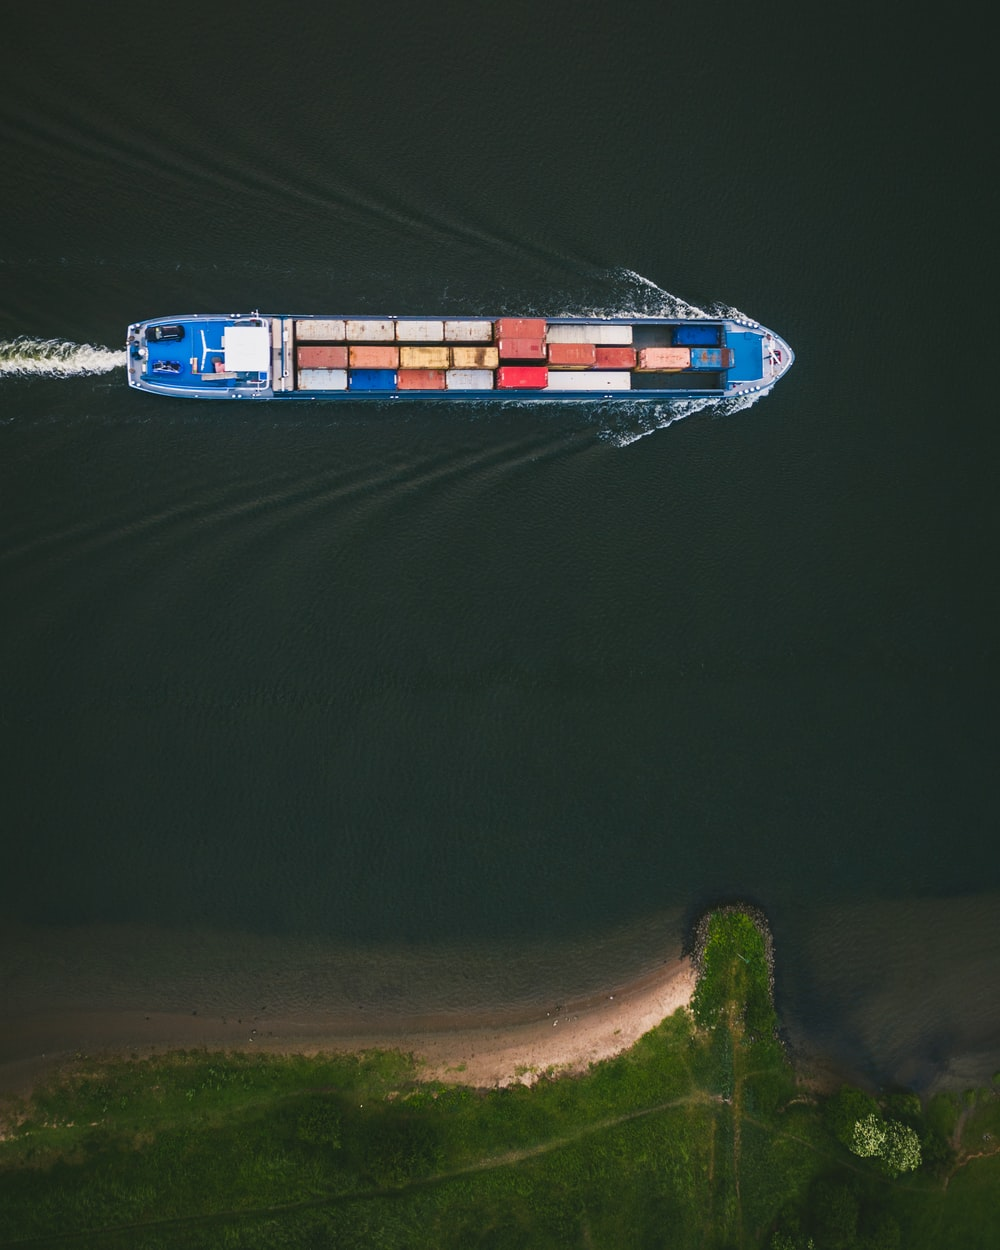 cargo ship on body of water